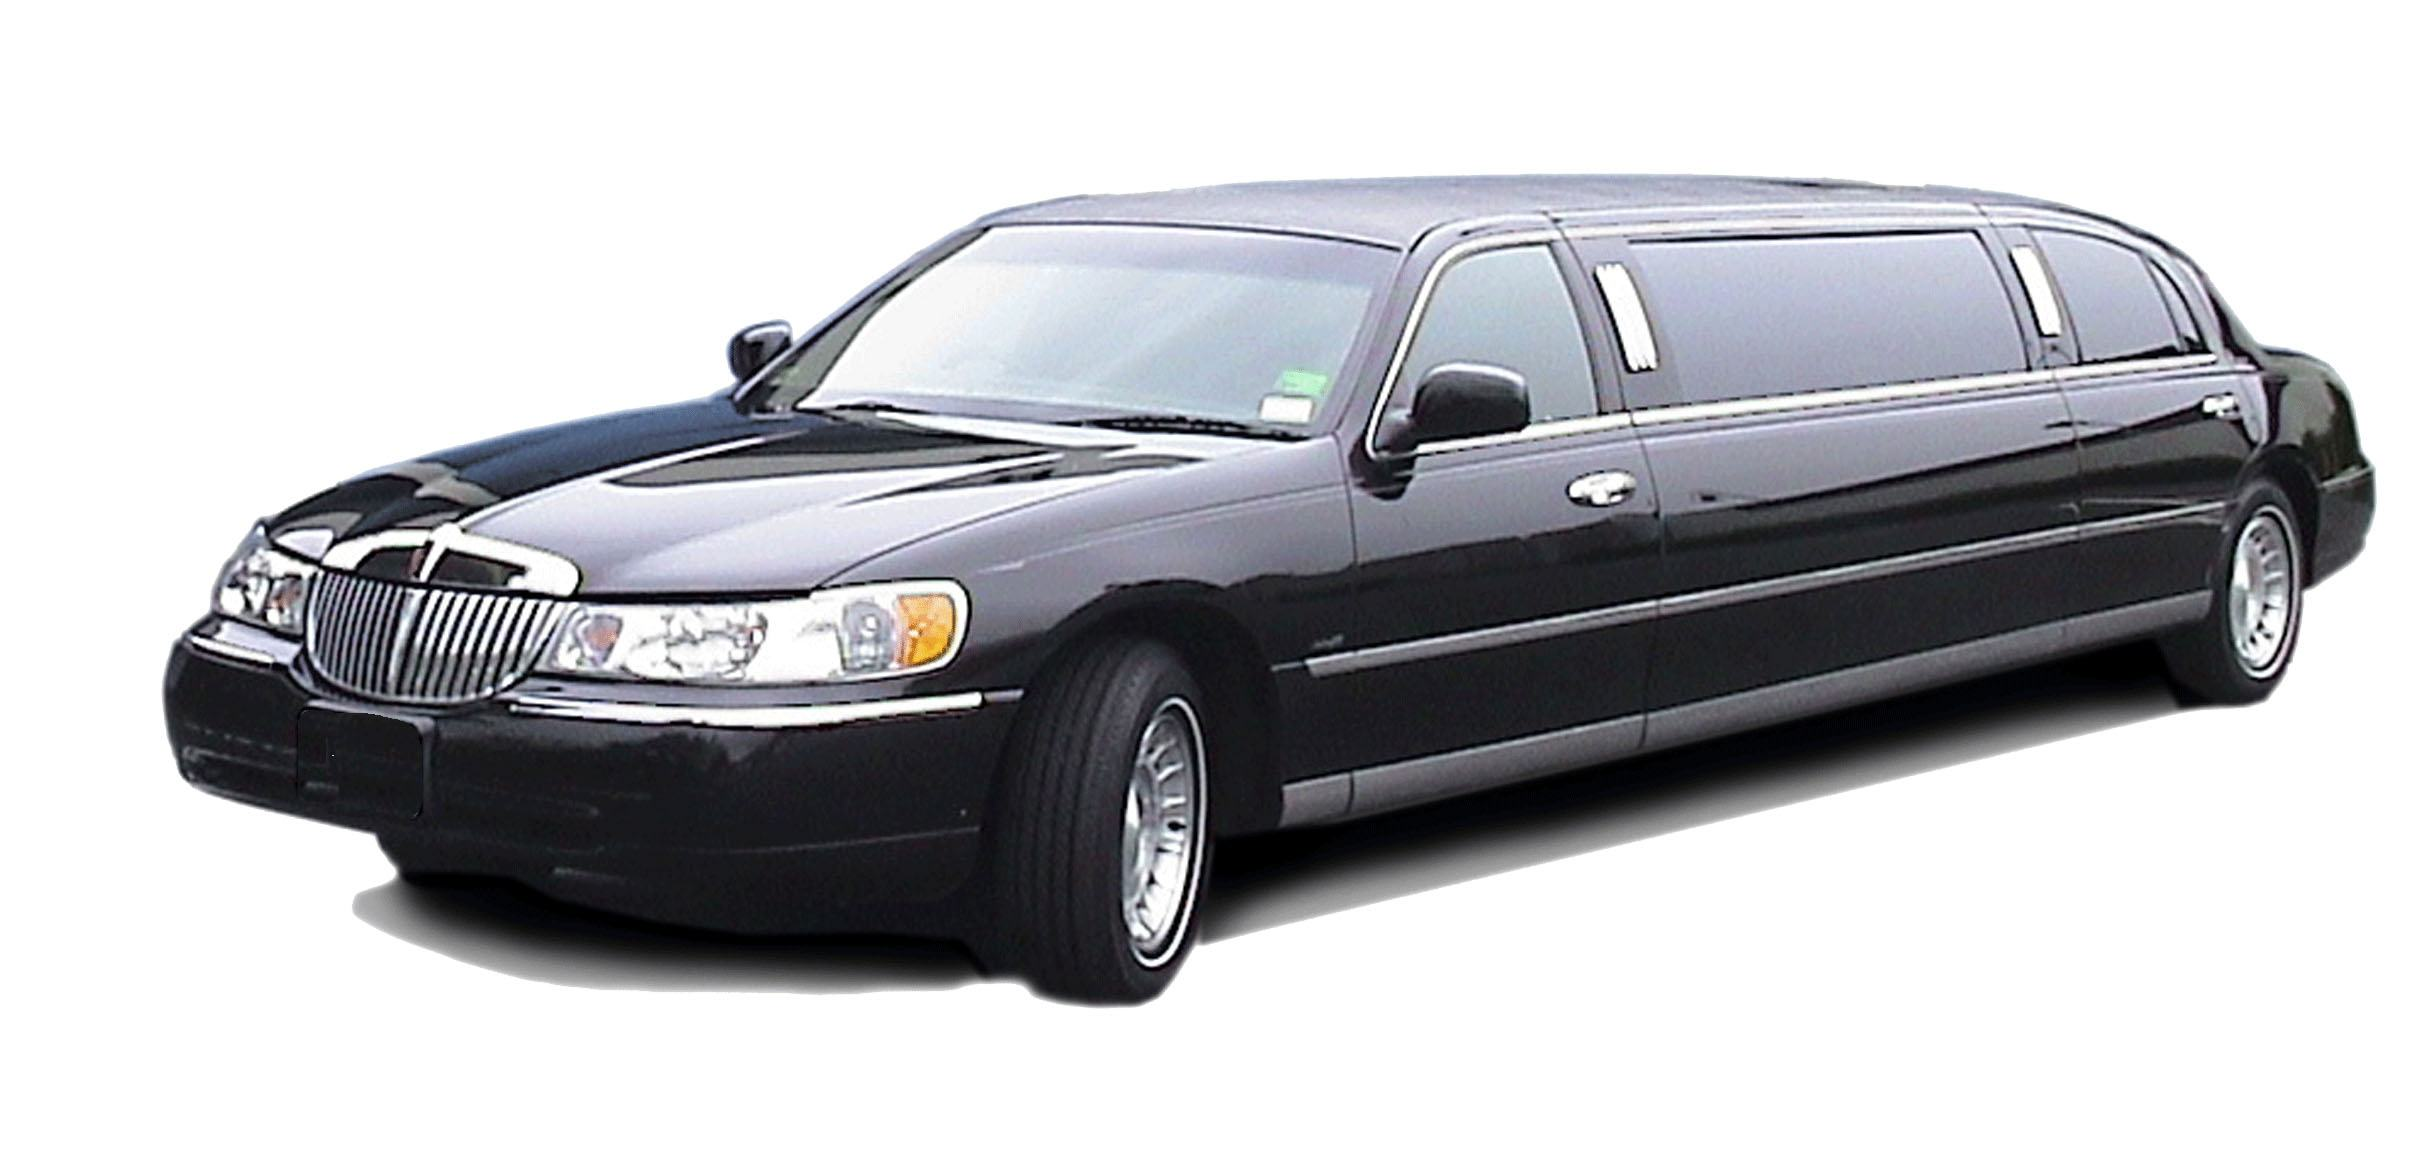 Limousine: Limousine Transfer From Montego Bay Airport To Sandals